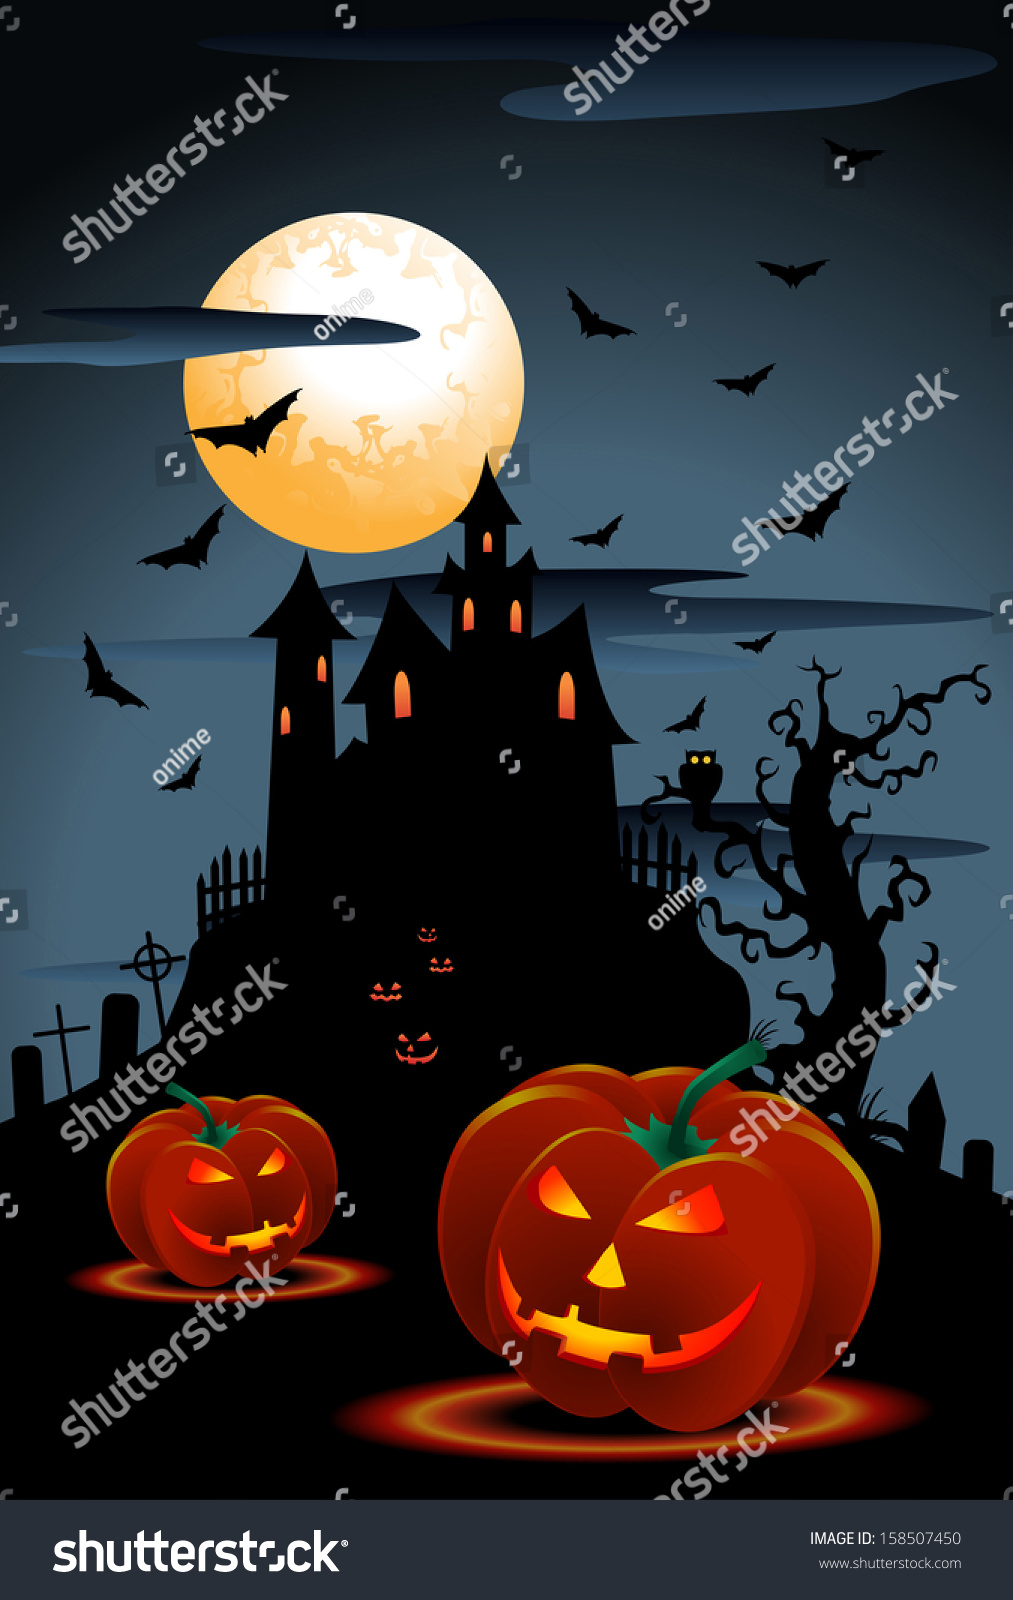 Illustration Scary Pumpkins Halloween Background Moon Stock ...